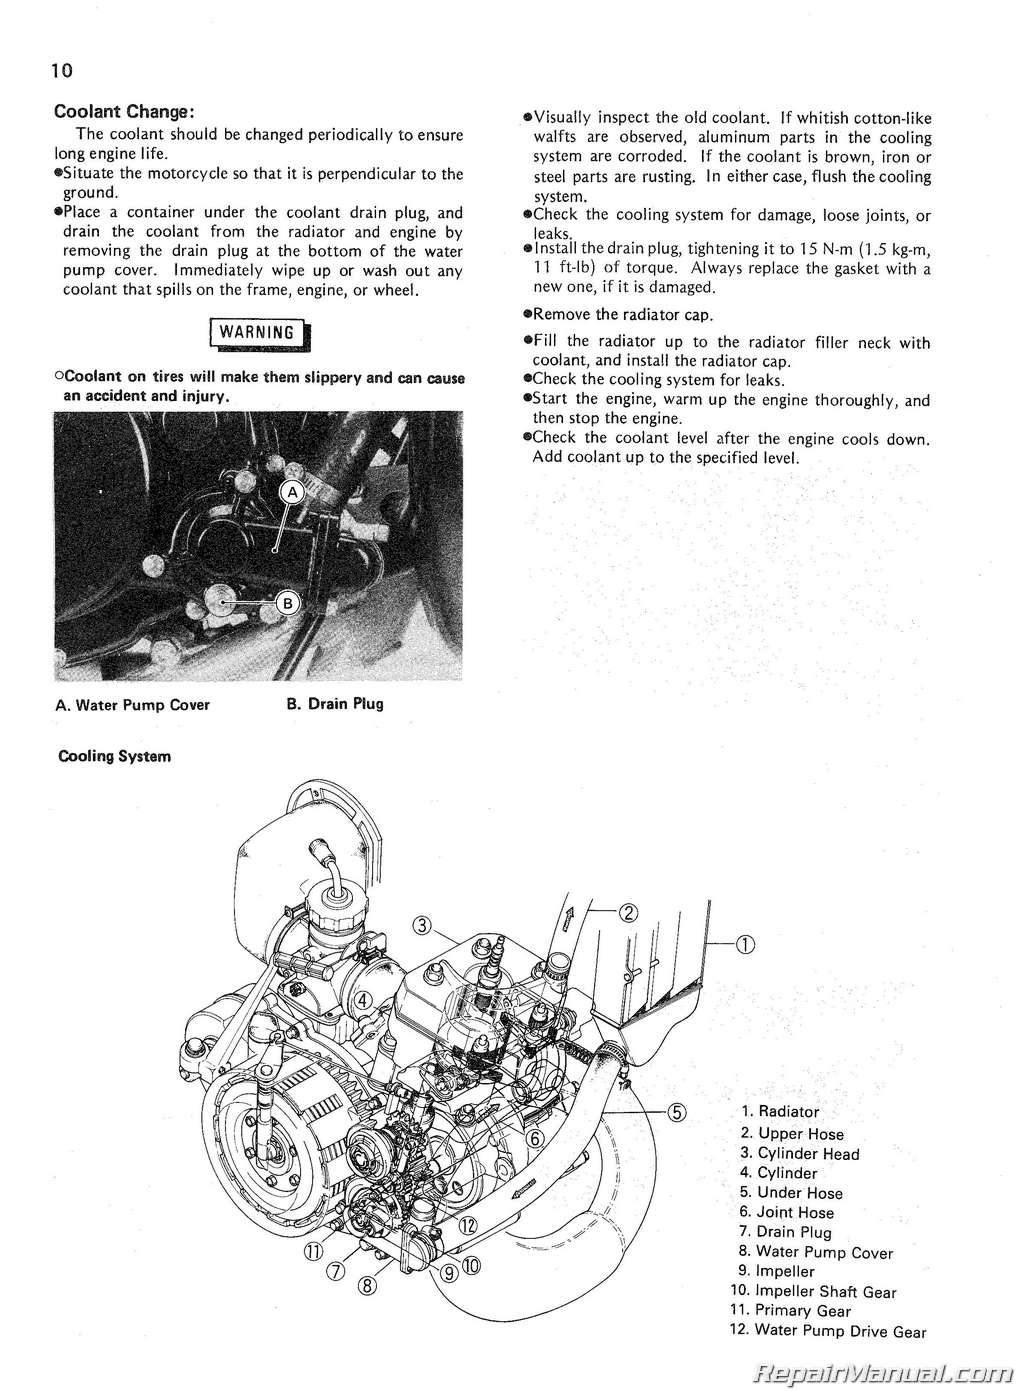 Motorcycle Engine Maintenance